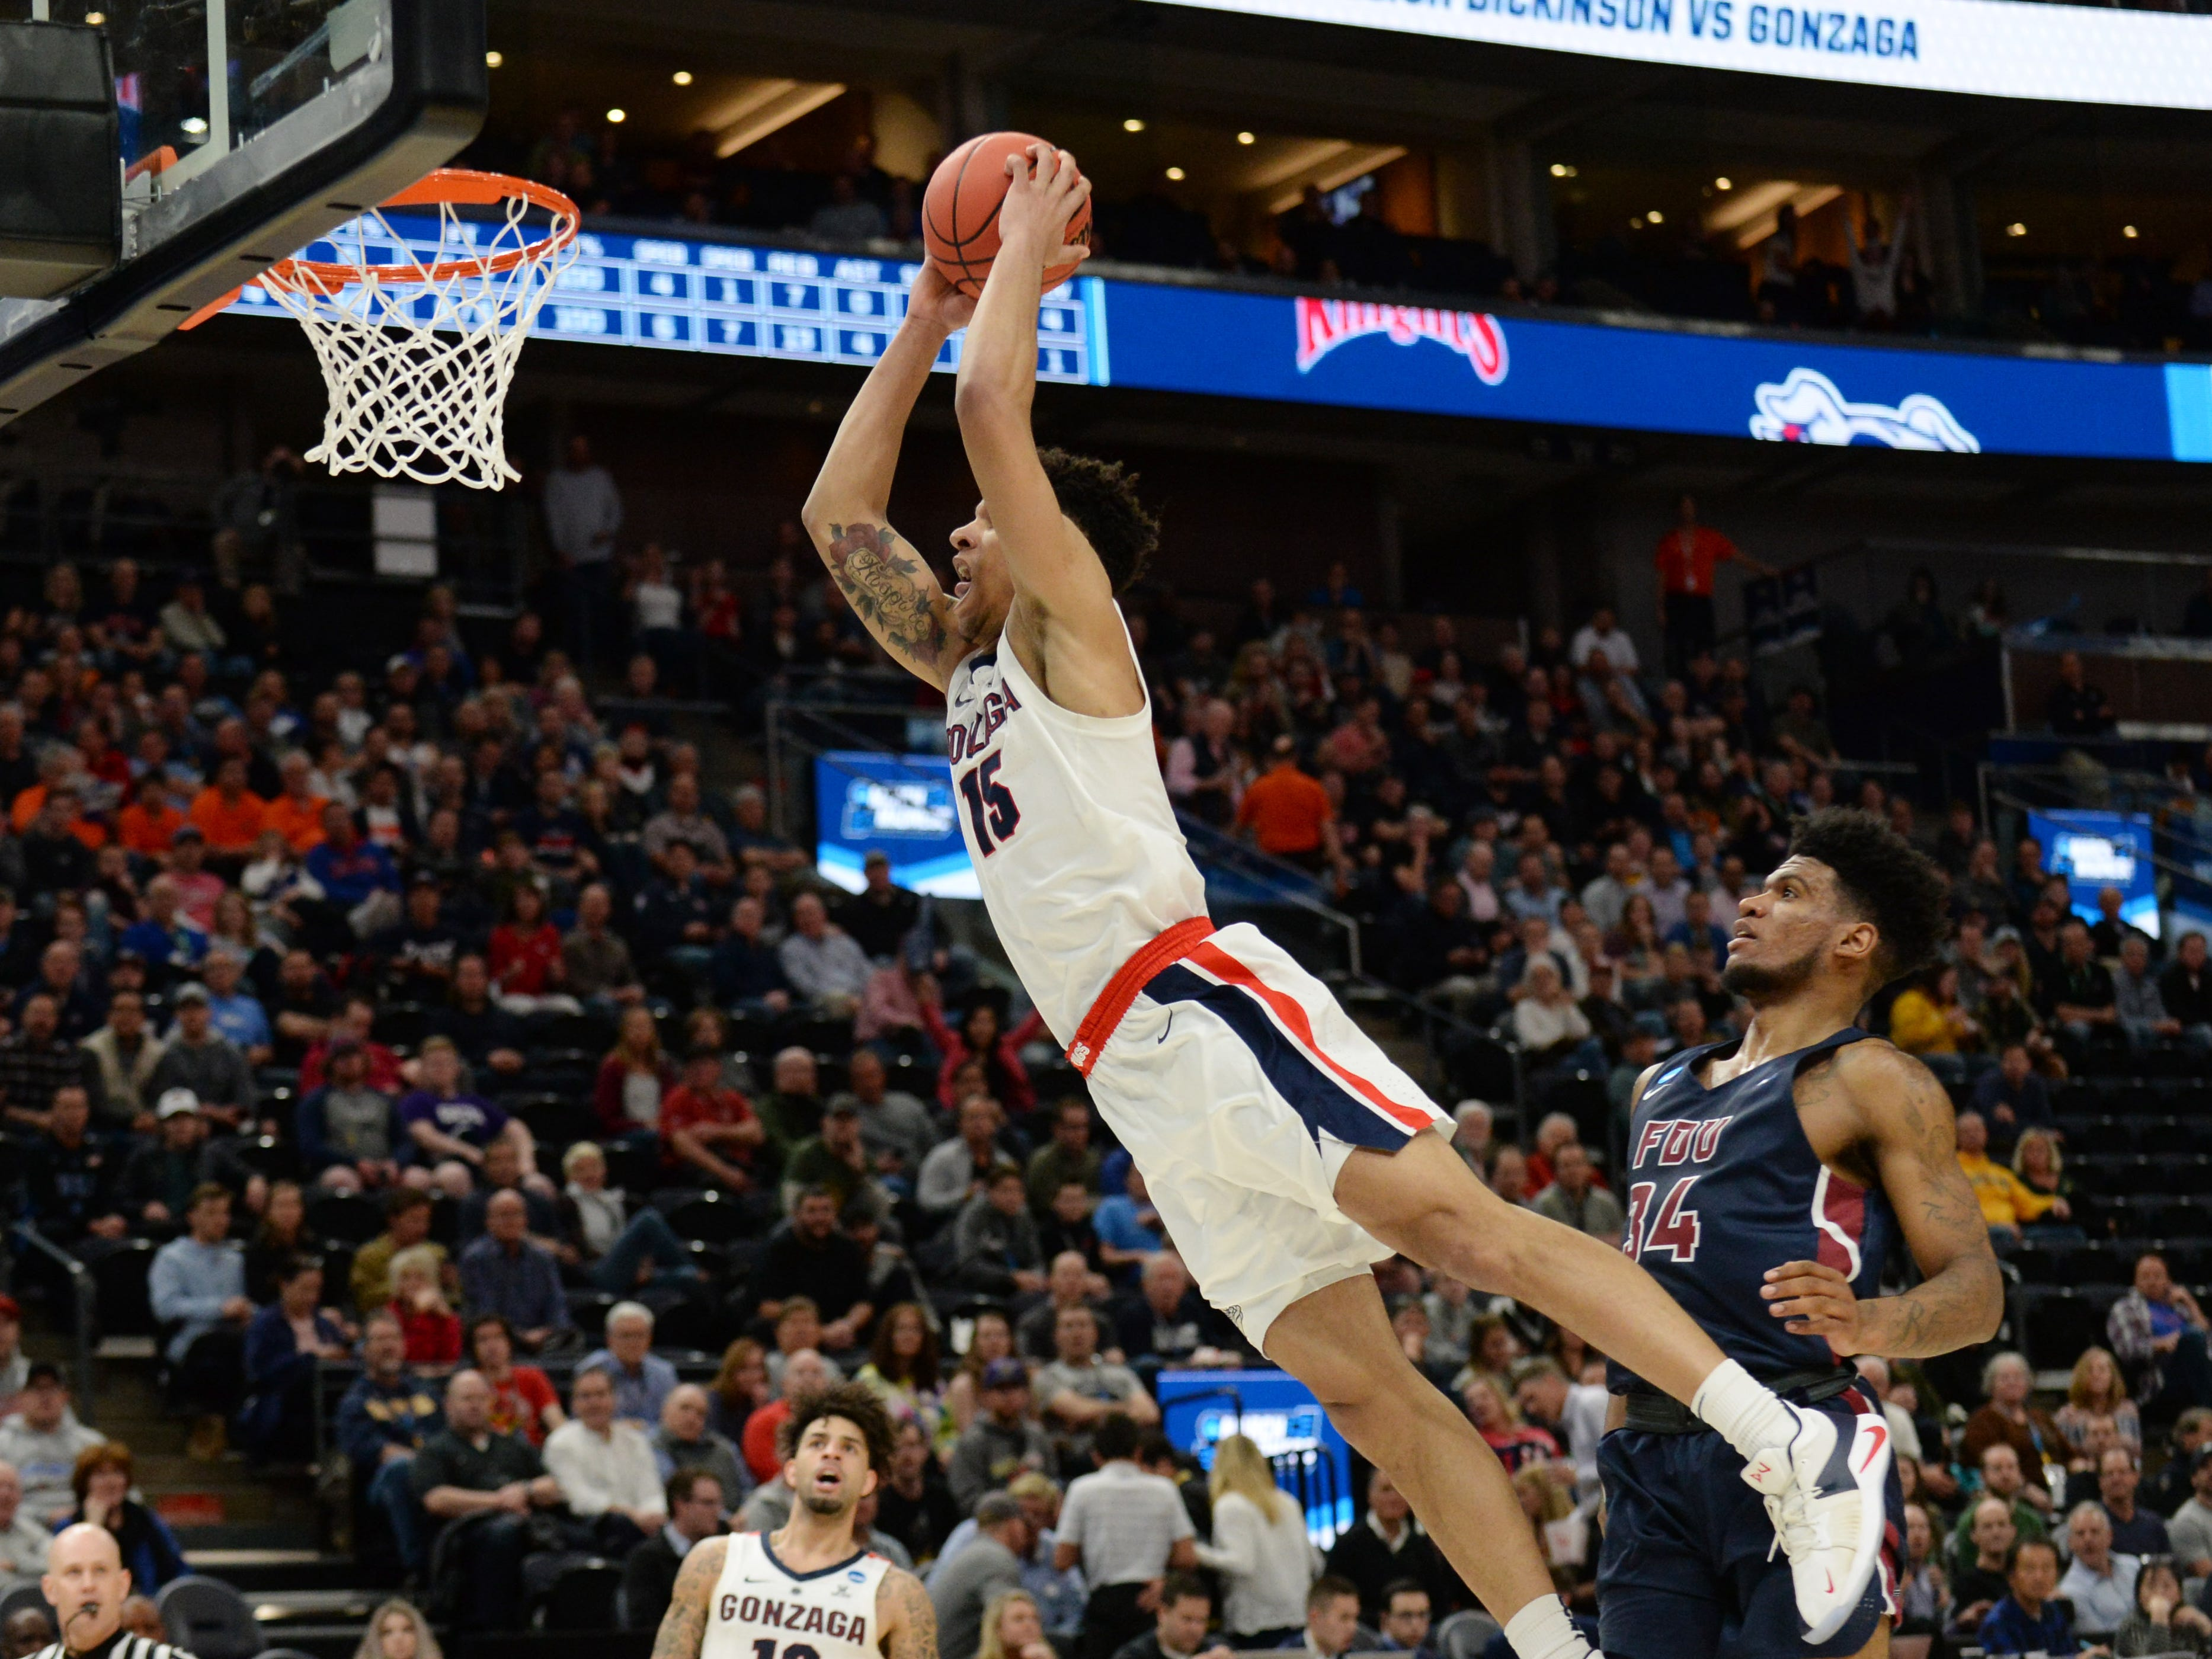 First round: Gonzaga forward Brandon Clarke dunks the ball against Fairleigh Dickinson.